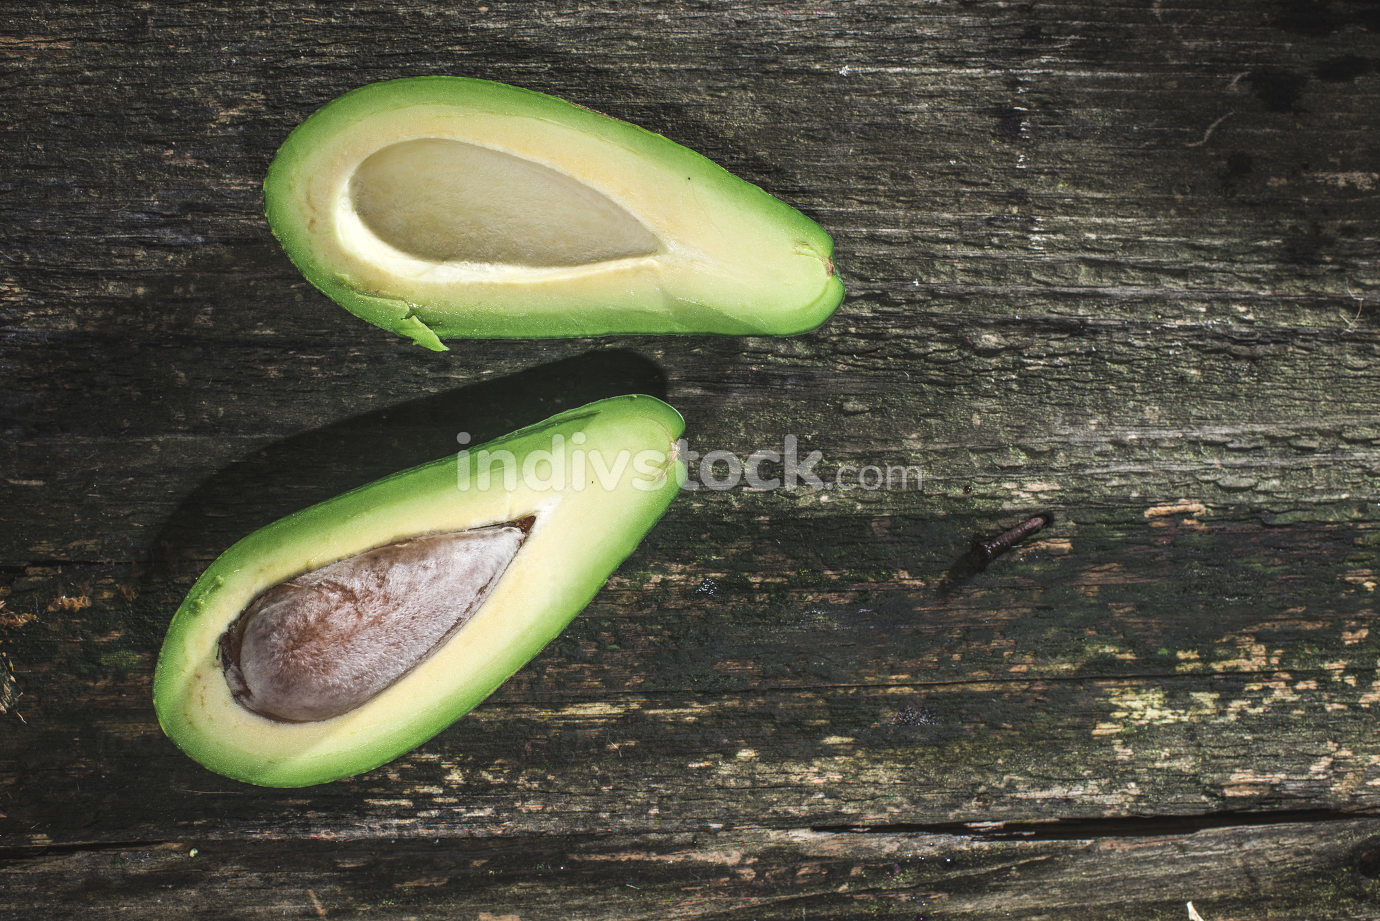 Avocado on wood. Dirrect sunlight